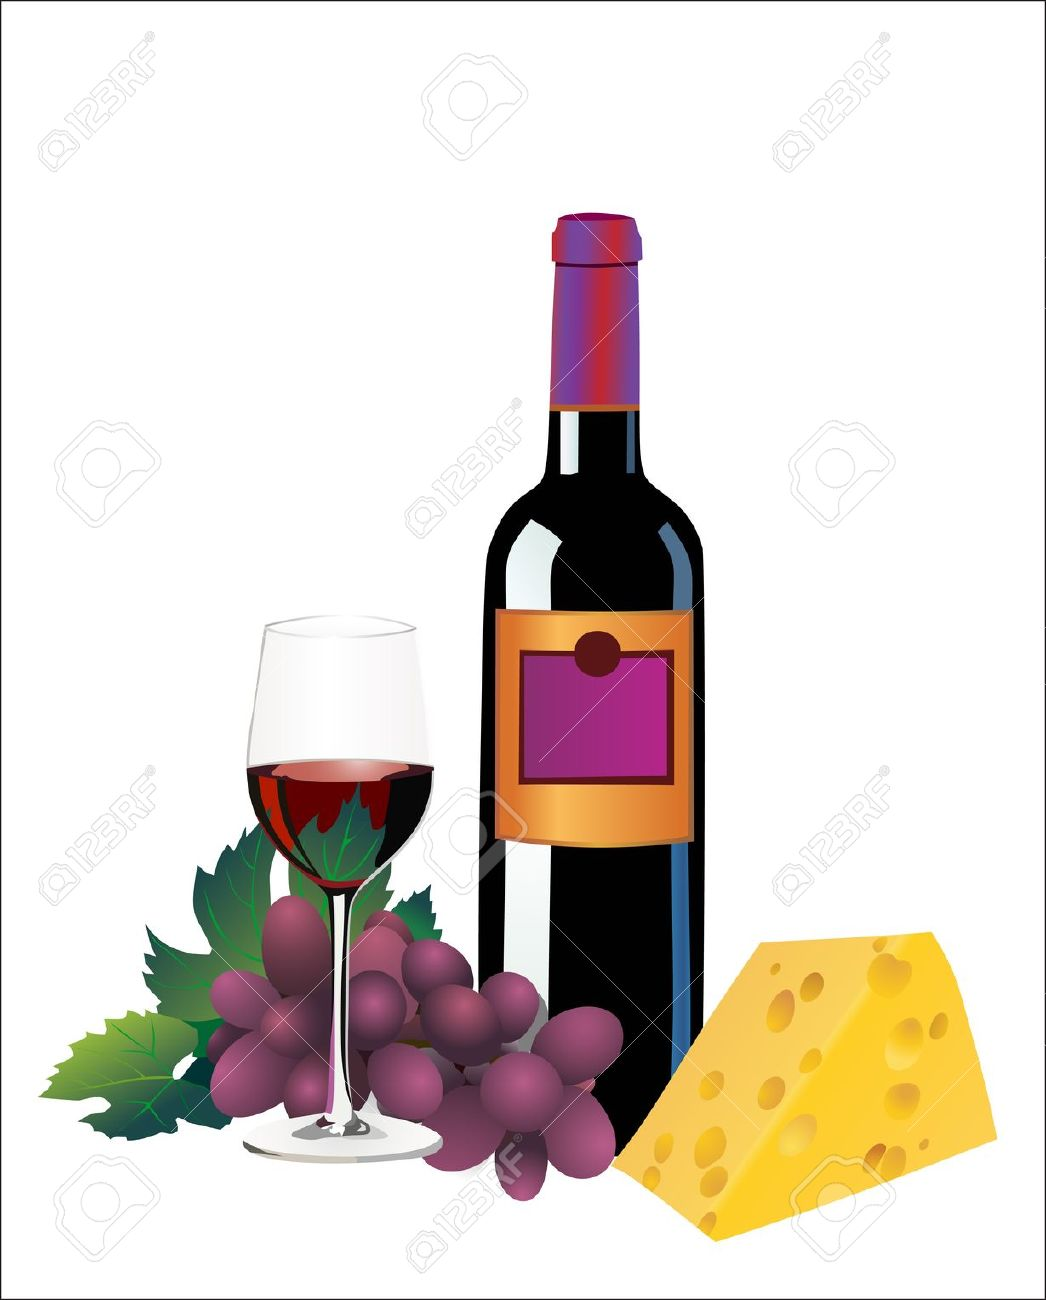 Free clipart wine and cheese on table clipart download Free Wine Party Cliparts, Download Free Clip Art, Free Clip Art on ... clipart download